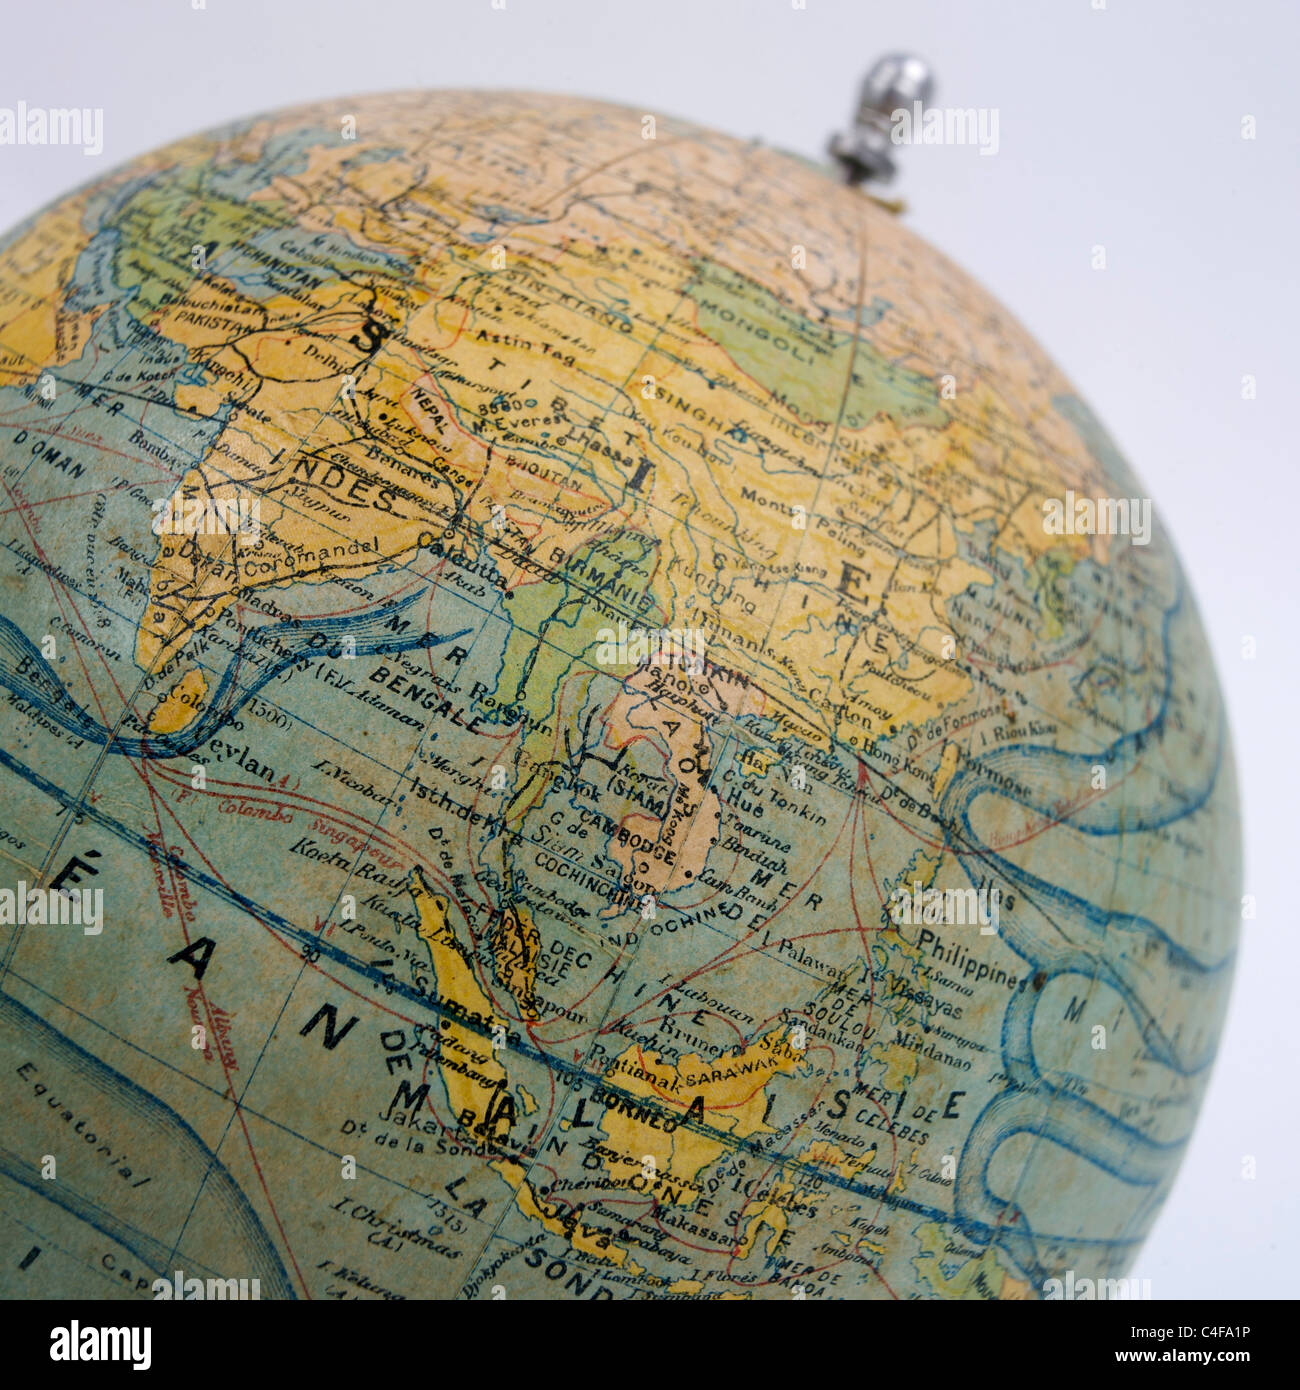 Close up of old-fashioned globe. - Stock Image